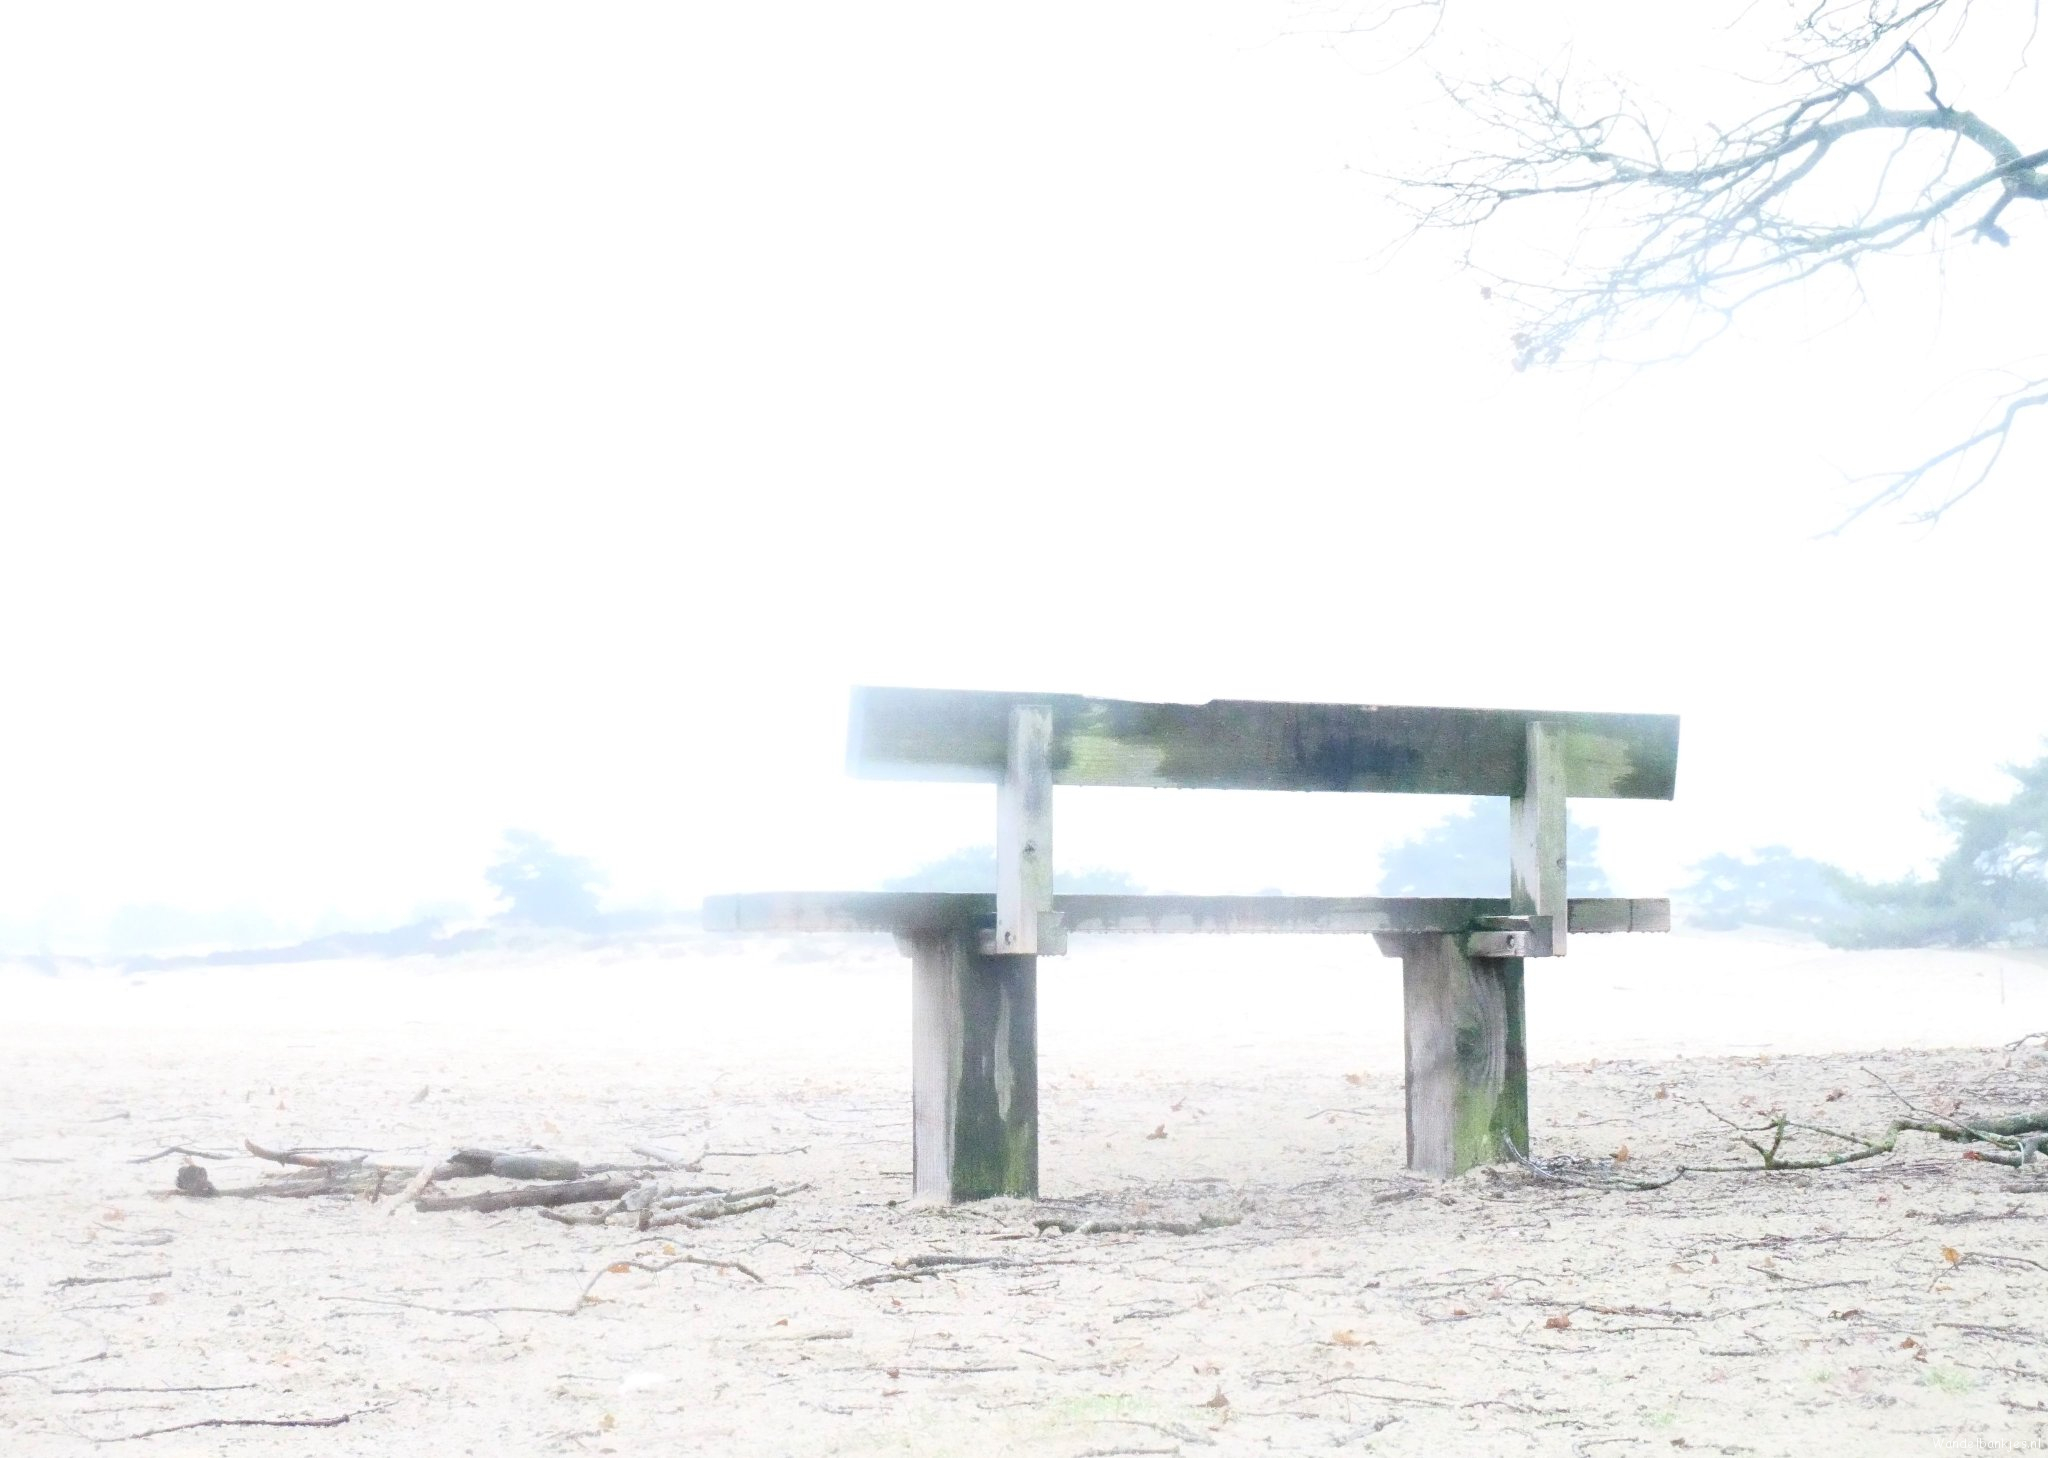 rt-umoja4-myfavebench-wandelbankjes-walkersbenches-staatsbosbeheer-aekingerzand-kaleduinen-photography-nature-highkey-https-t